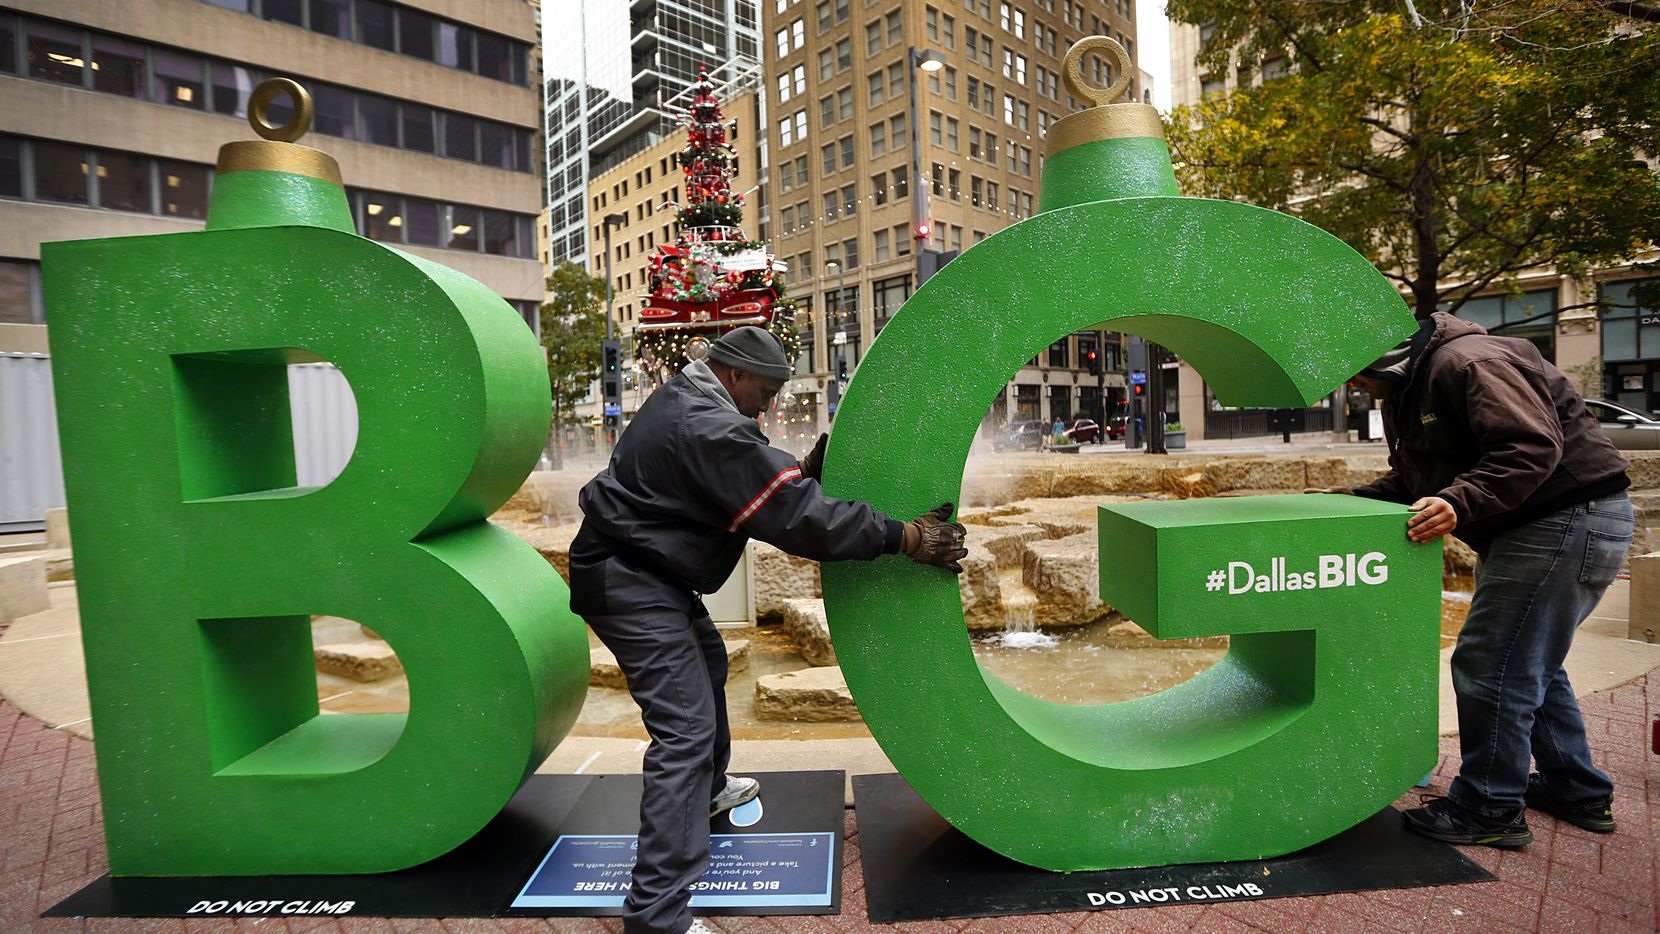 A Christmas-ornament-themed decorations installed at Akard and Main streets downtown in 2013 were part of the Dallas BIG campaign by VisitDallas, the city's tourism arm.